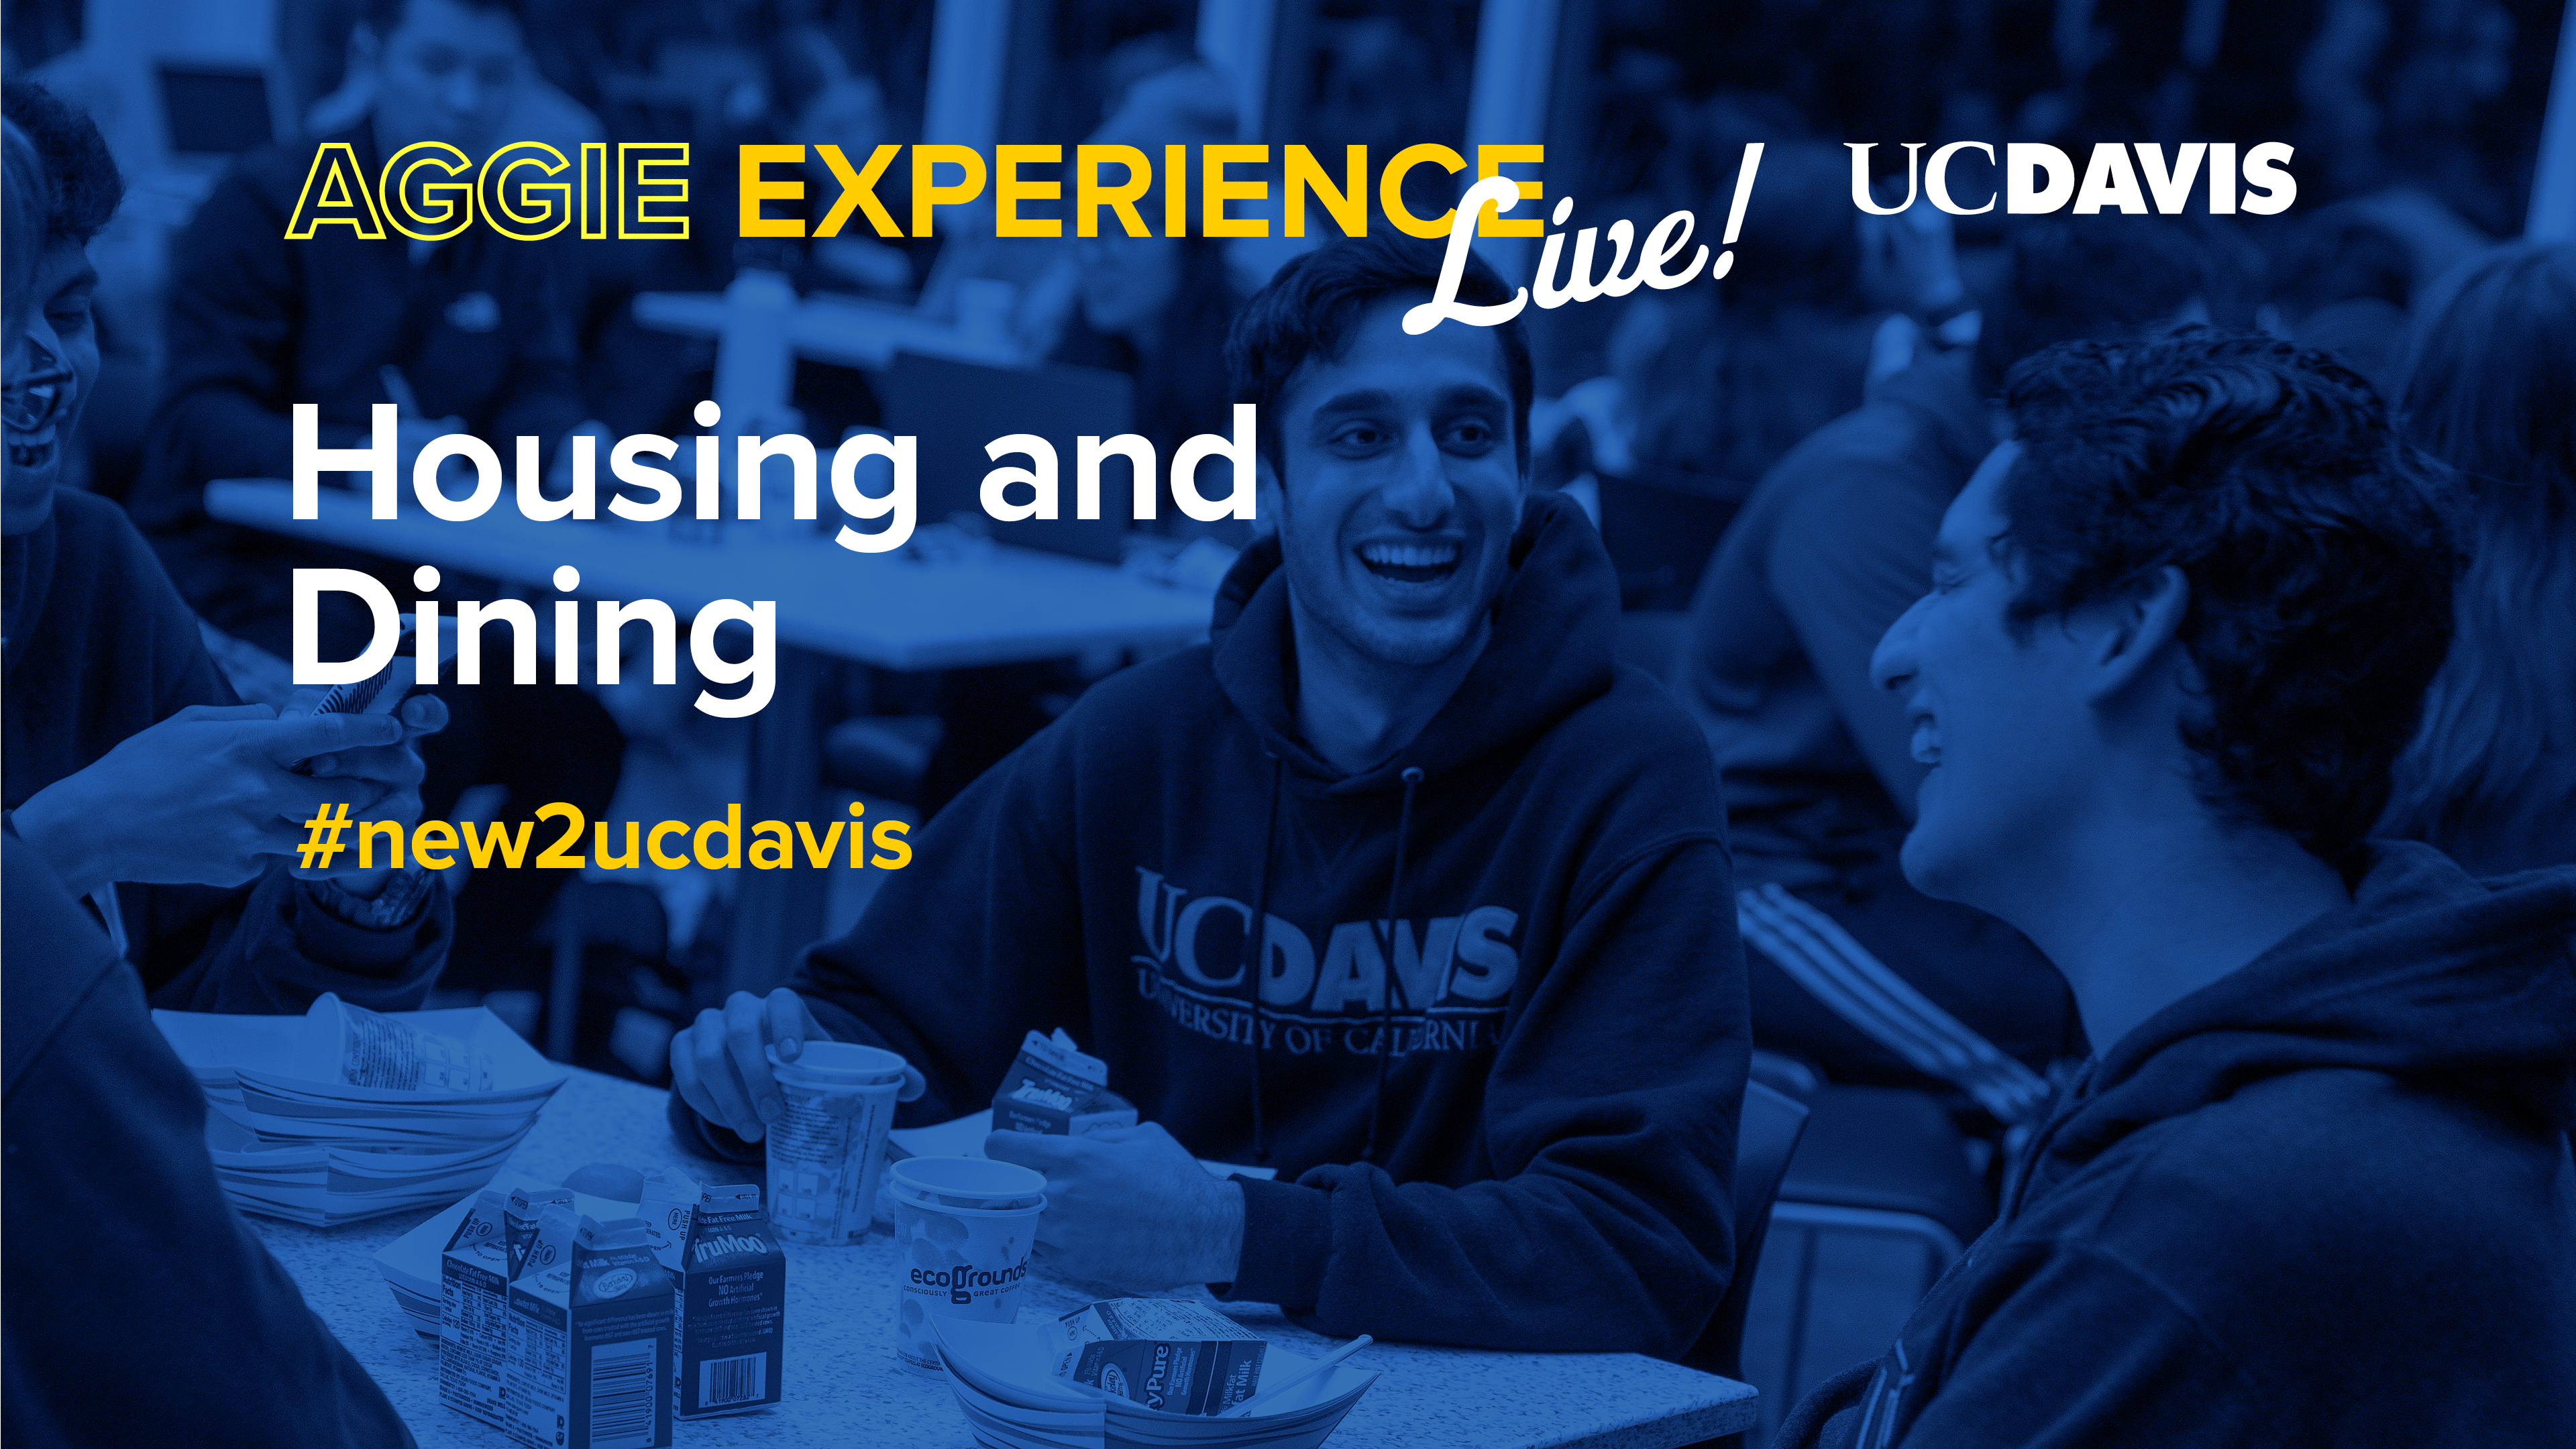 UC Davis Aggie Experience Live! Housing and Dining